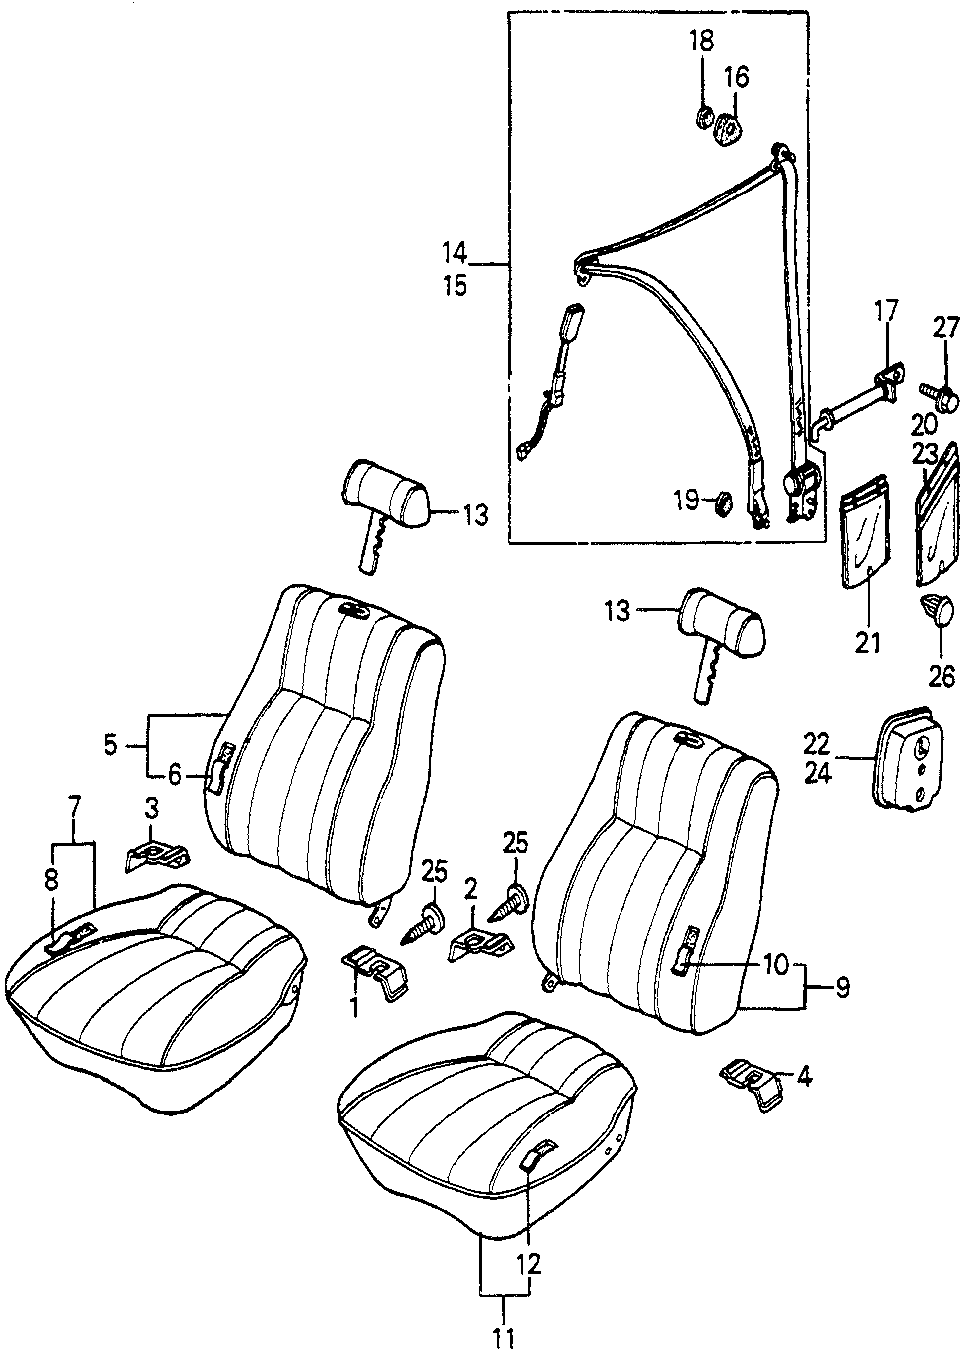 72854-SA5-010ZV - GARNISH, L. SEAT CENTER *R40L*(ARK RED)